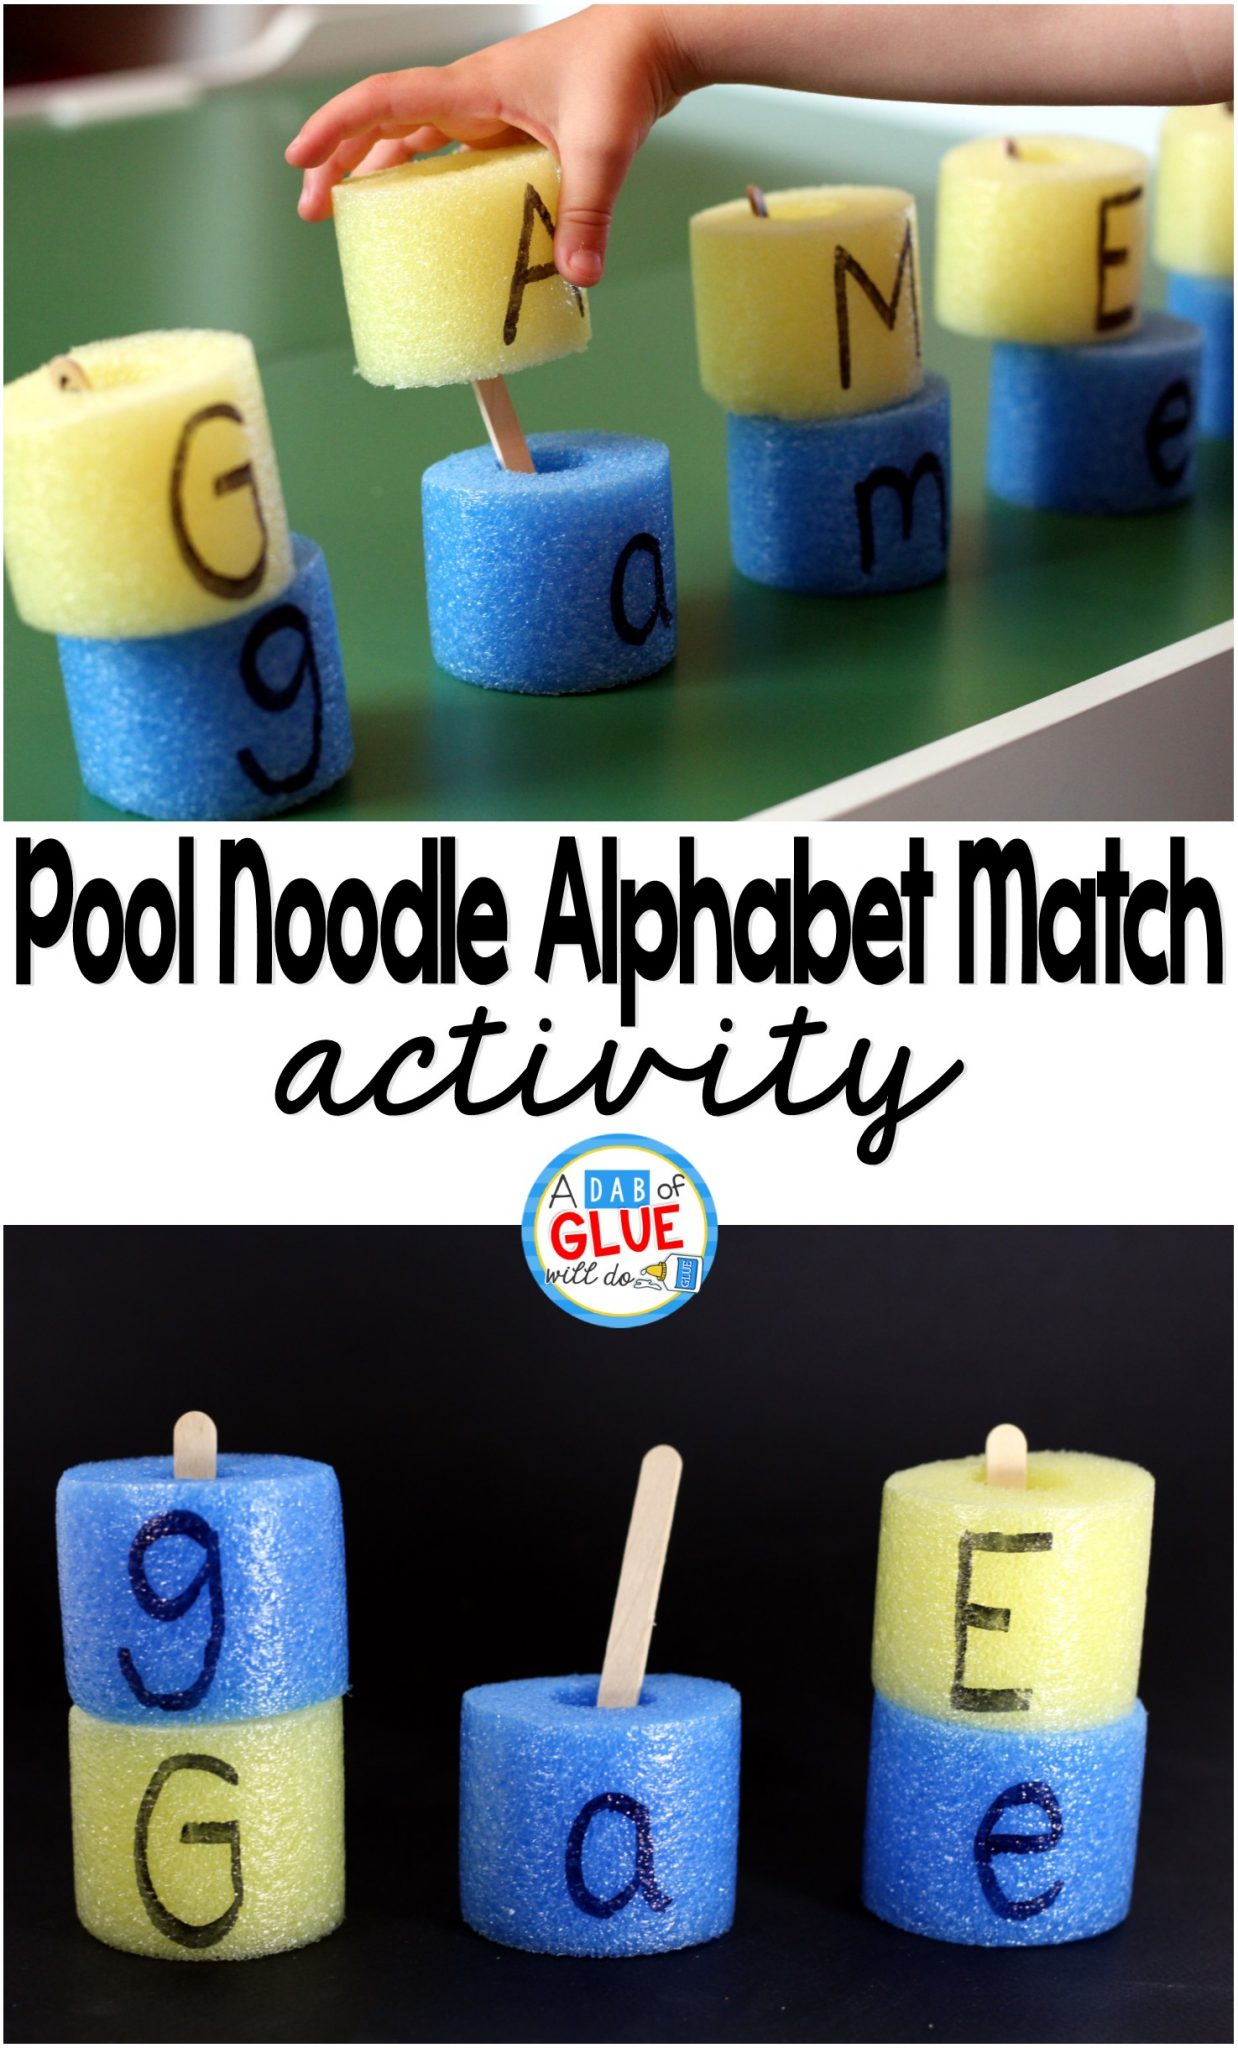 Pool Noodle Alphabet Match